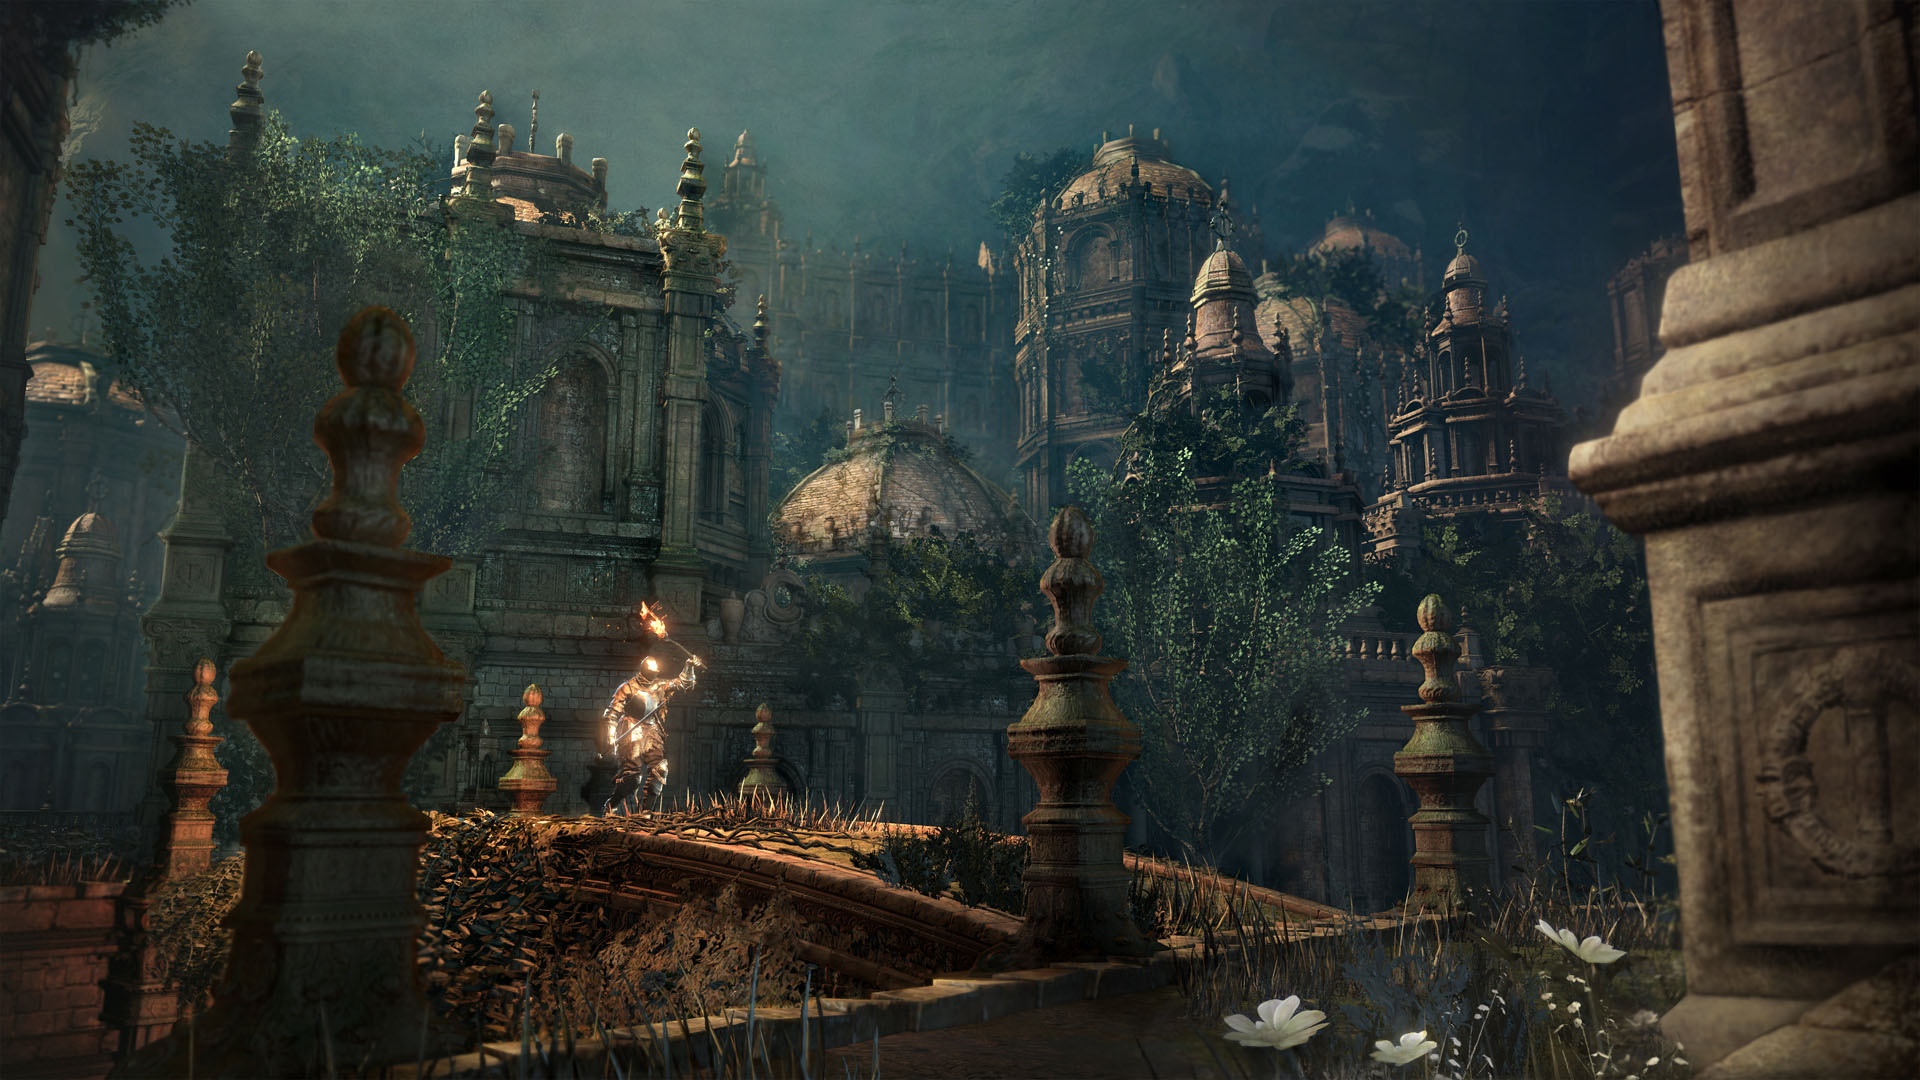 Dark Souls III The Ringed City Download For Free